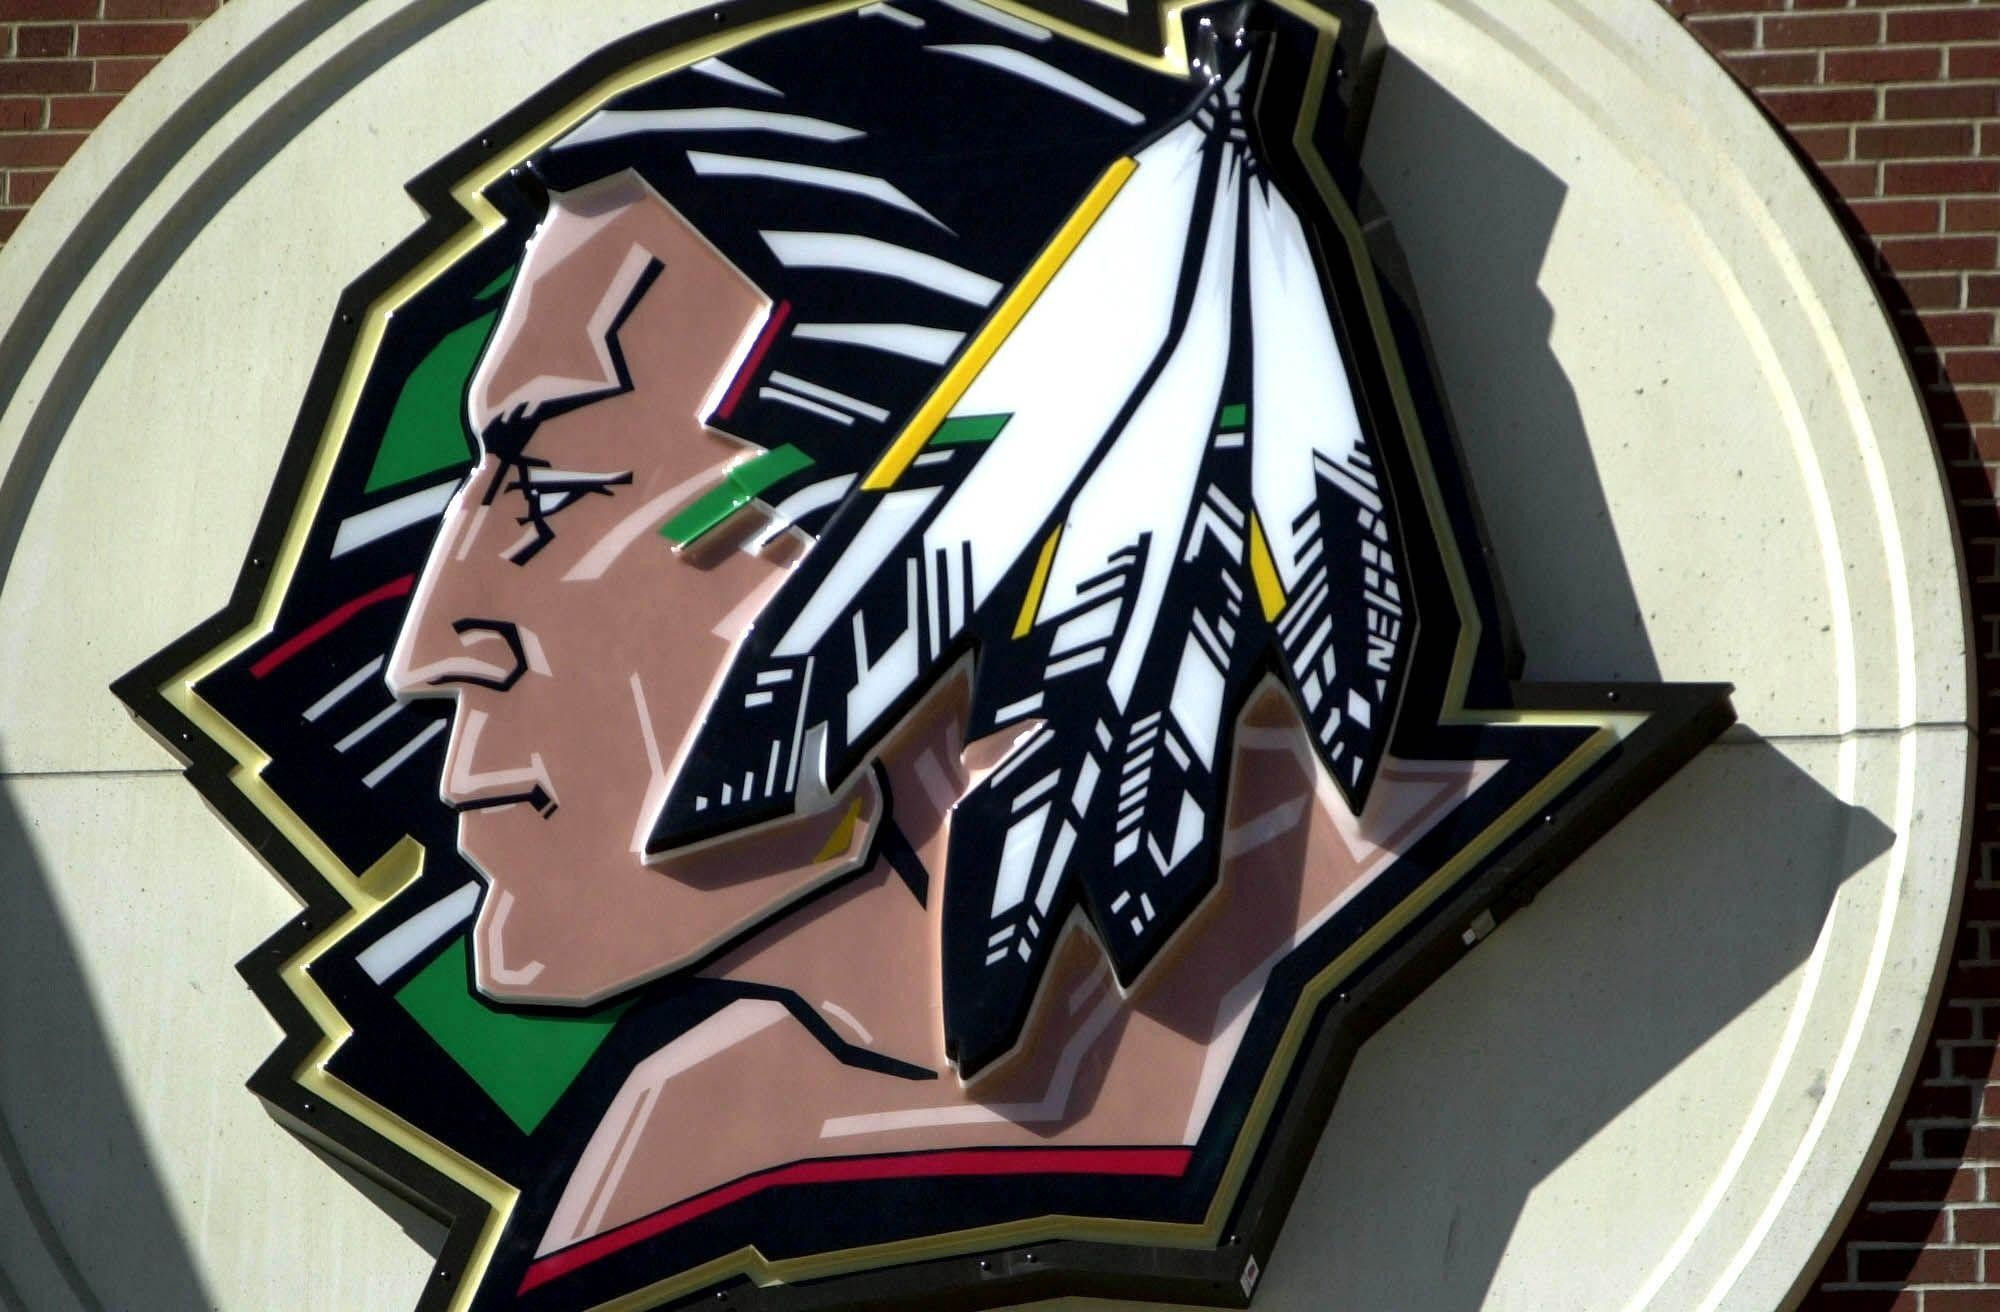 Res: 2000x1312, Fighting Sioux Logo - Viewing Gallery